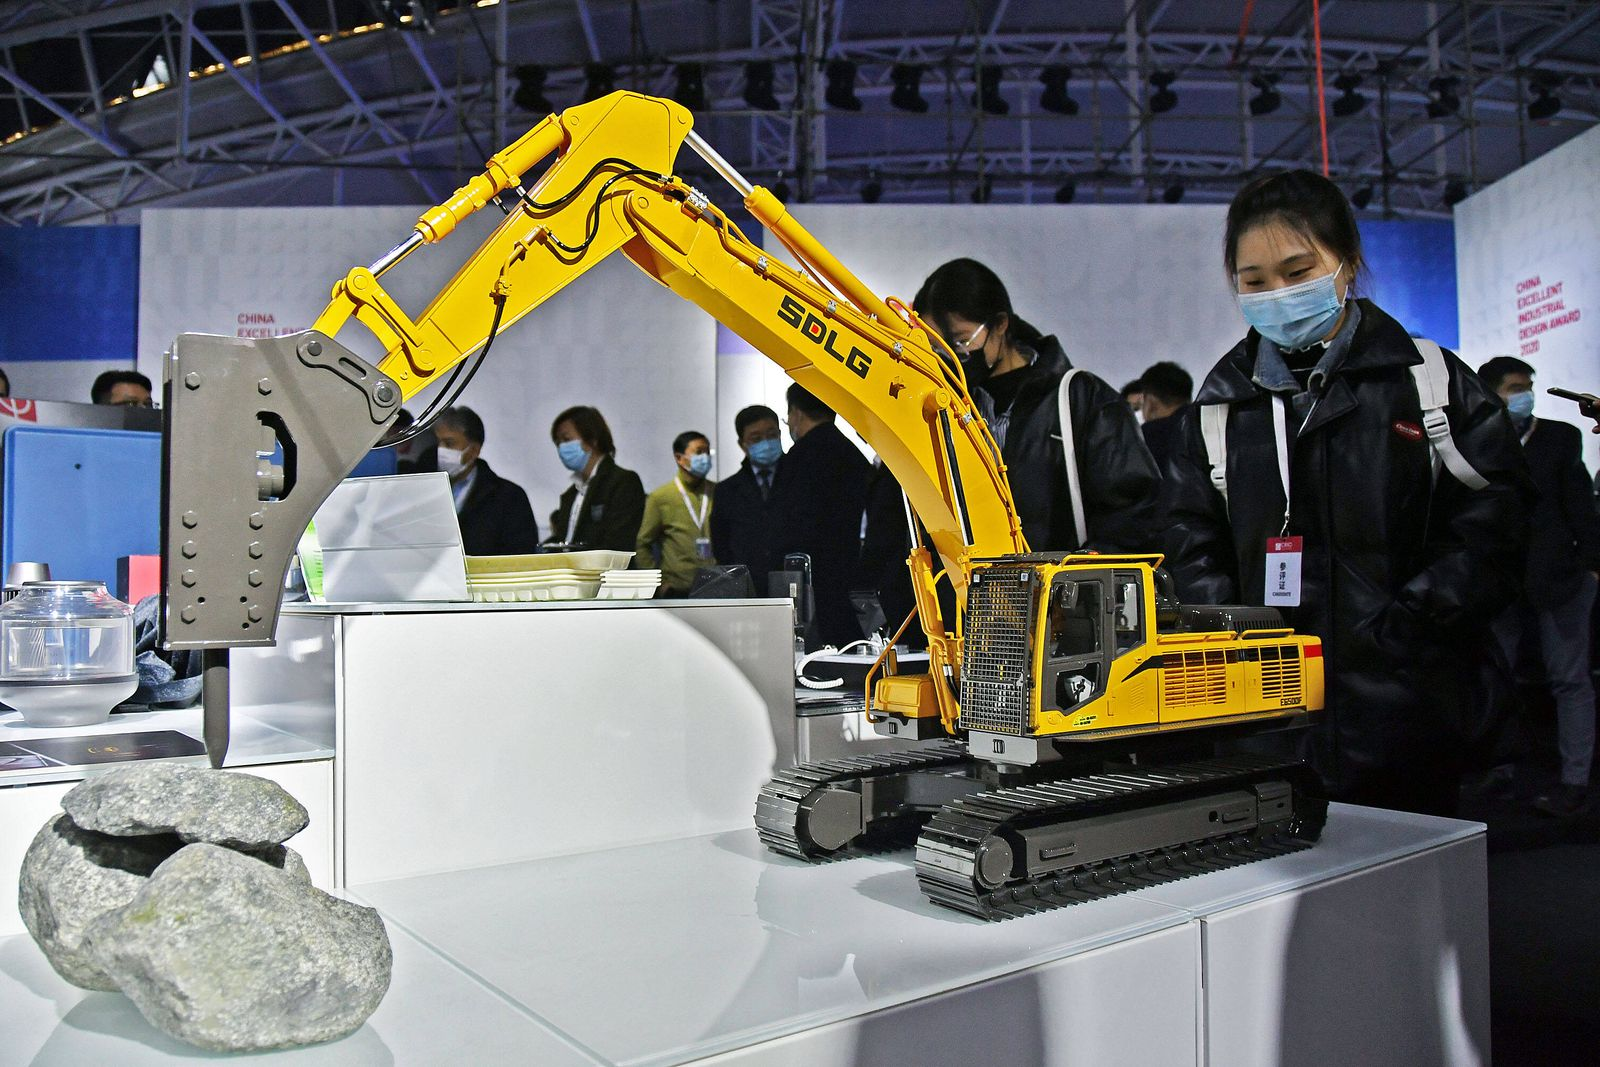 (201125) -- YANTAI, Nov. 25, 2020 -- A visitor views an excavator model during the 2020 World Industrial Design Confere